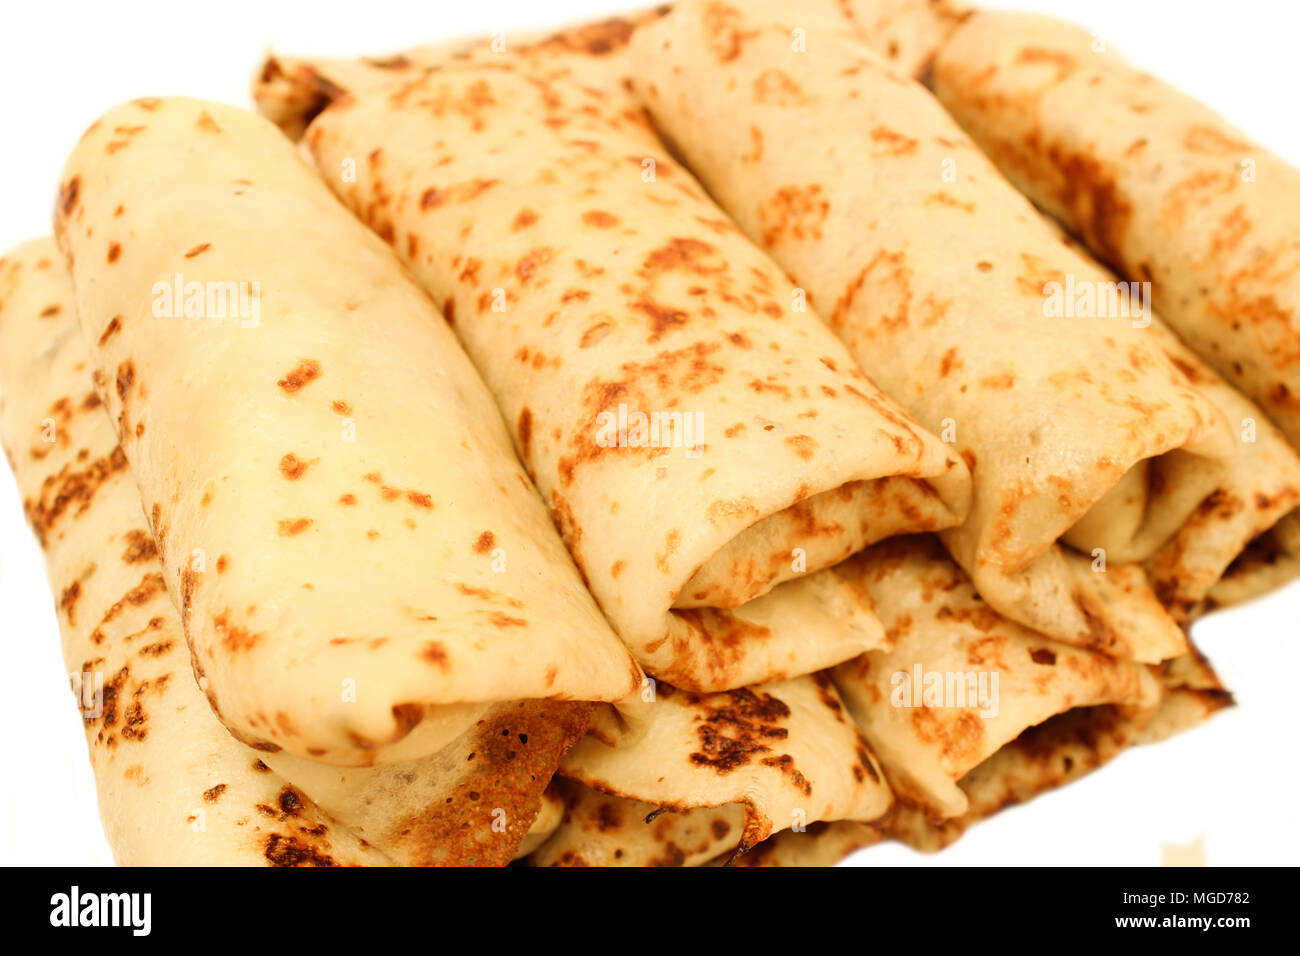 Russian pancakes with fillings wrapped in them isolated on white background - Stock Image